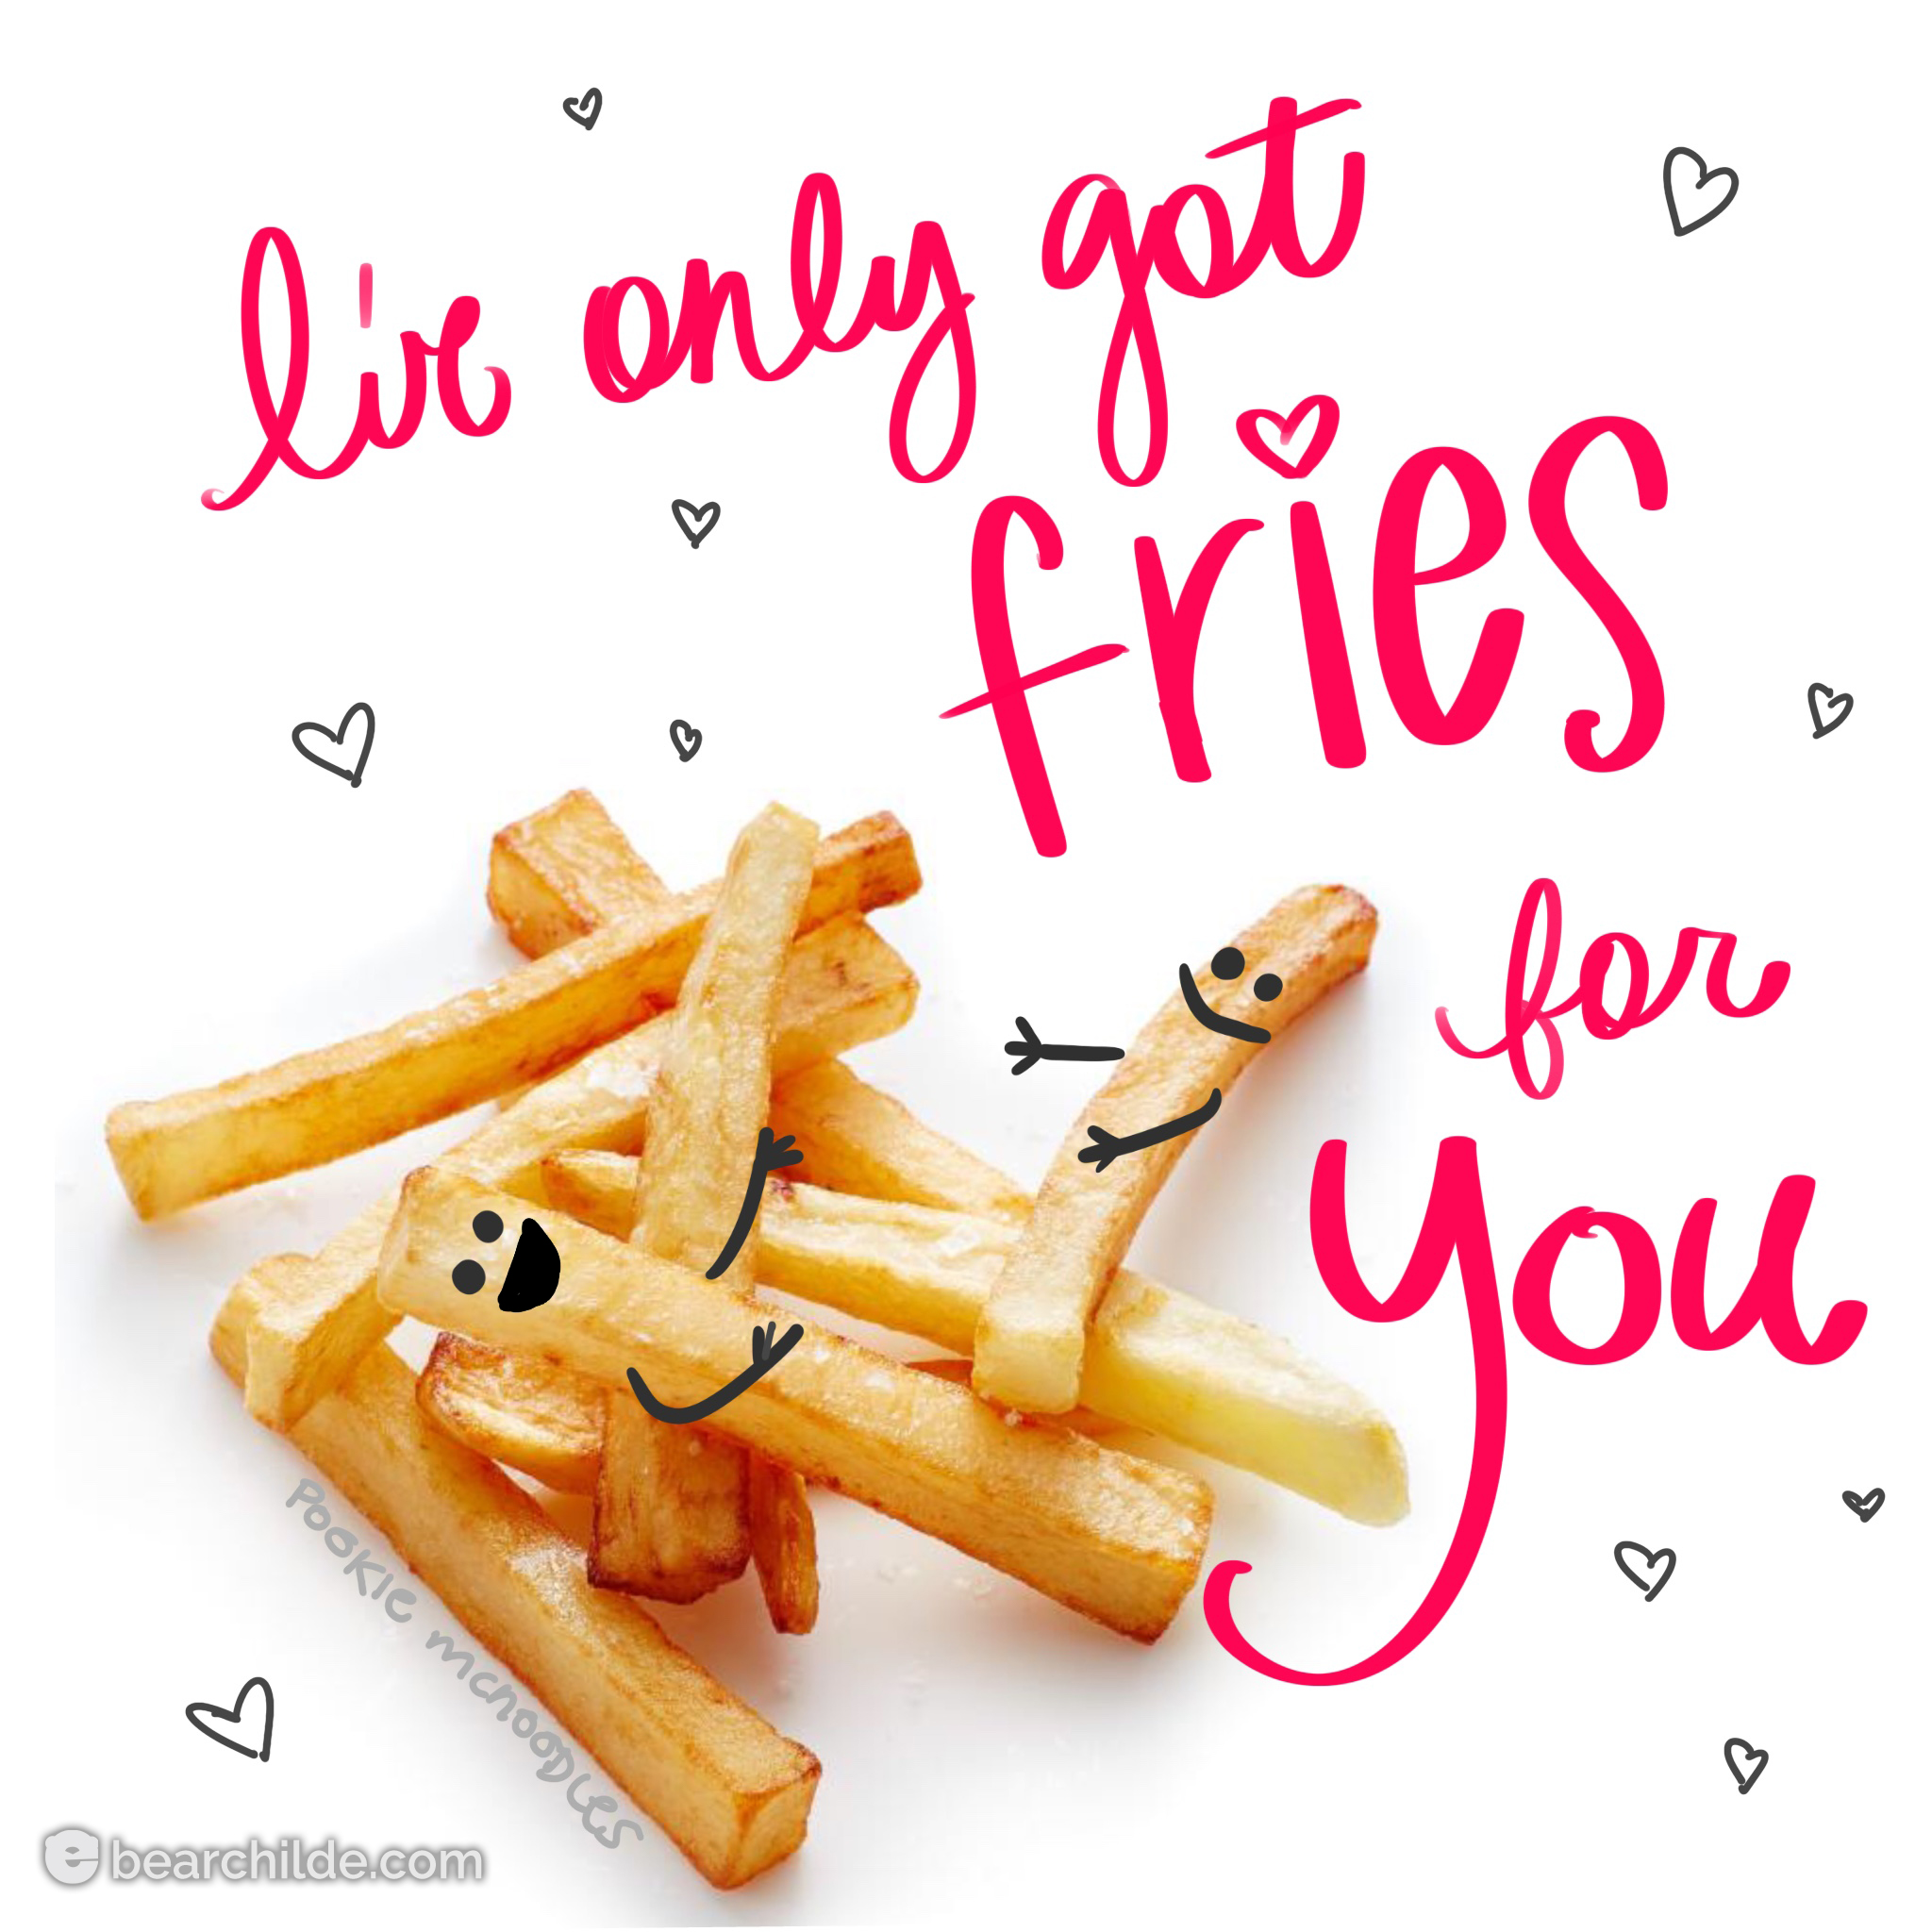 I've only got fries for you